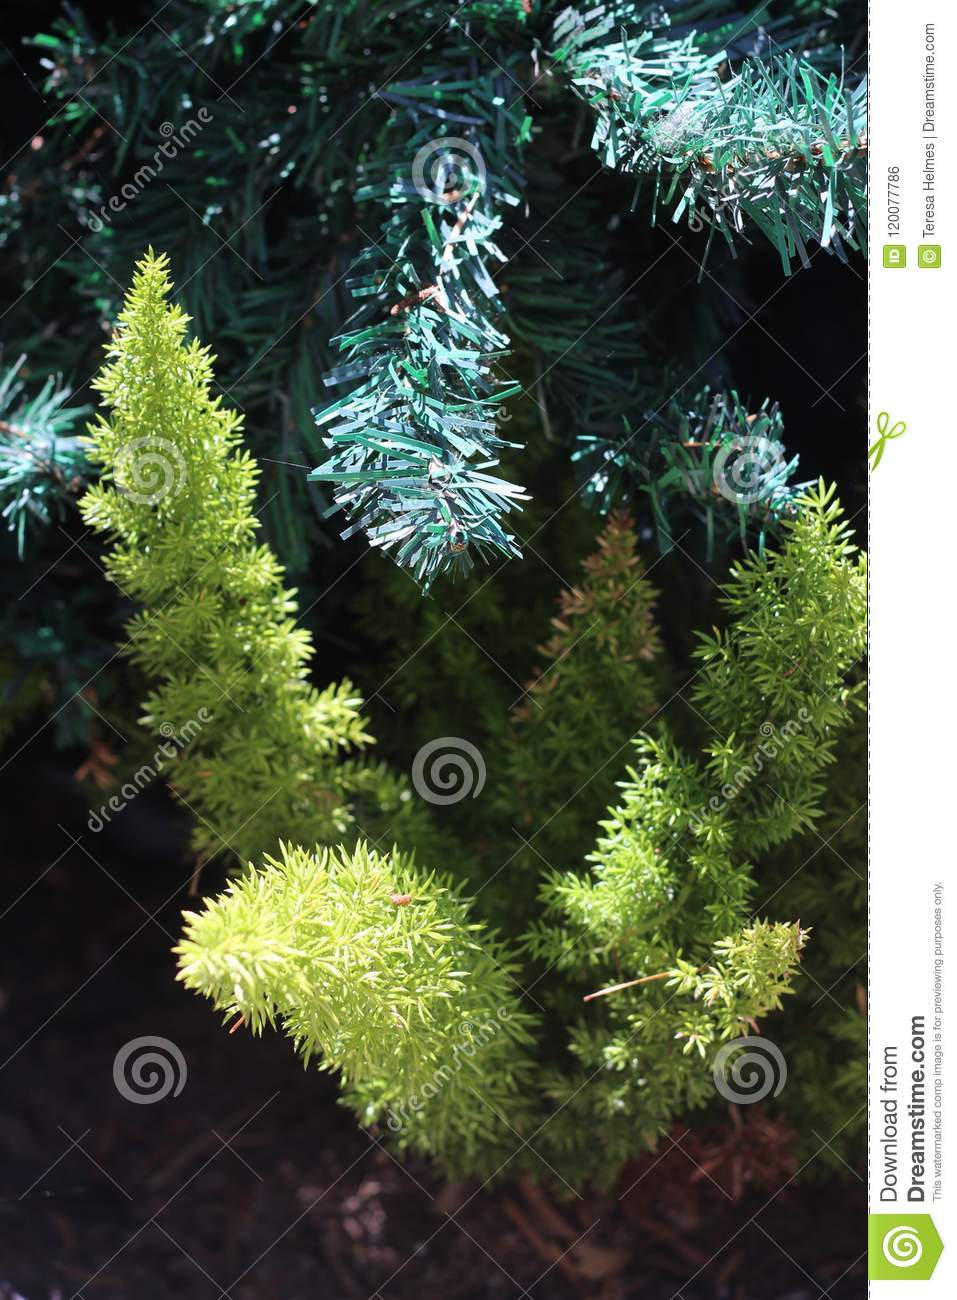 Foxtail Asparagus Fern Blended With Artificial Christmas Tree In Los